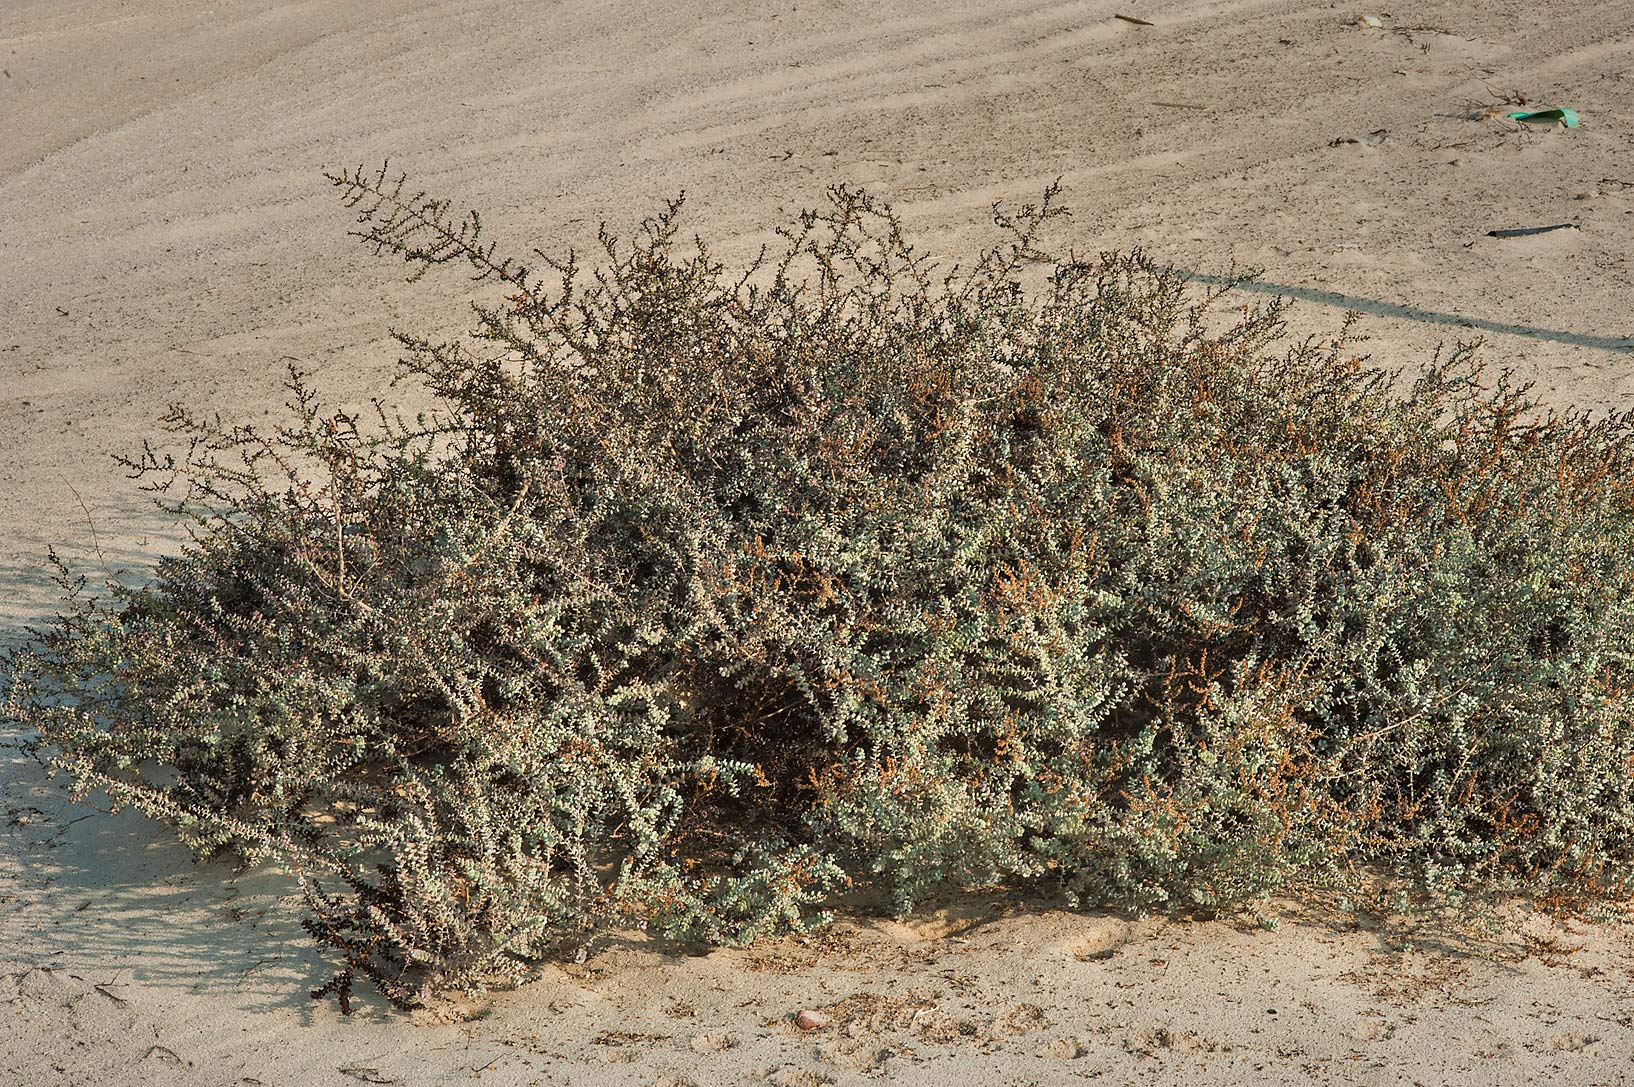 Big plant of Seablite (Suaeda vermiculata) on a...Samra, near the border. Southern Qatar